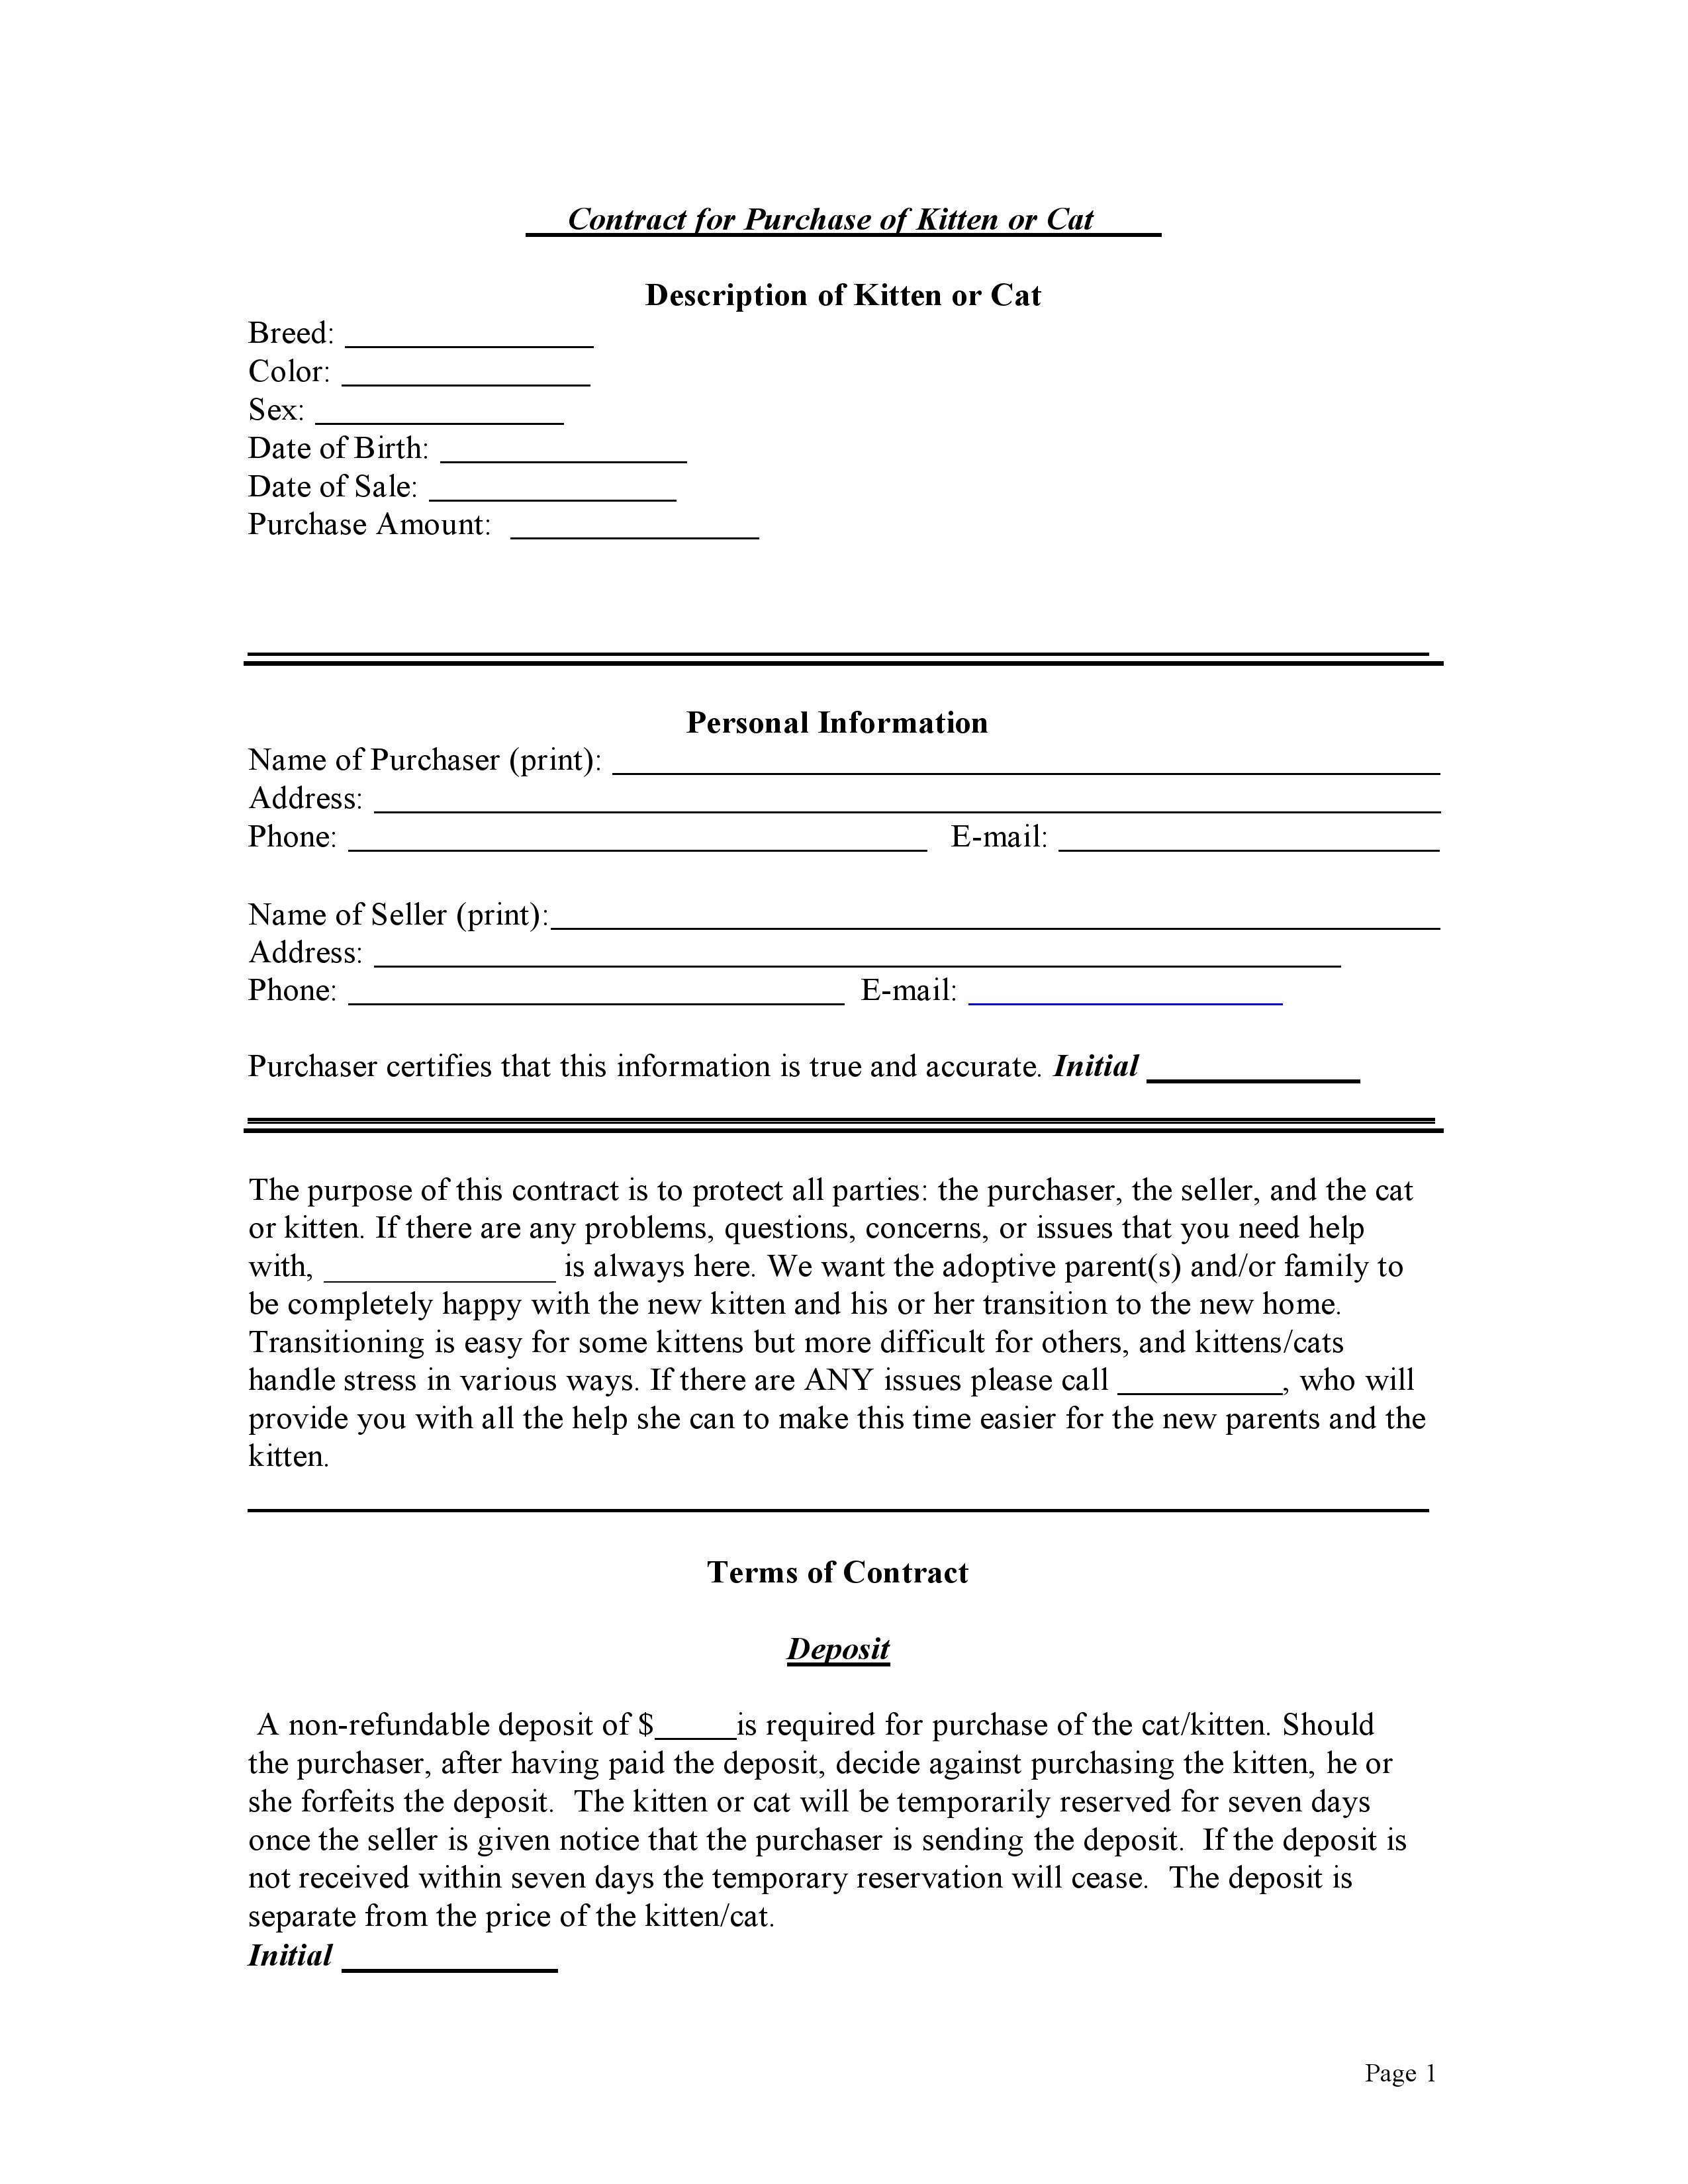 free bill of sale for a cat or kitten pdf docx